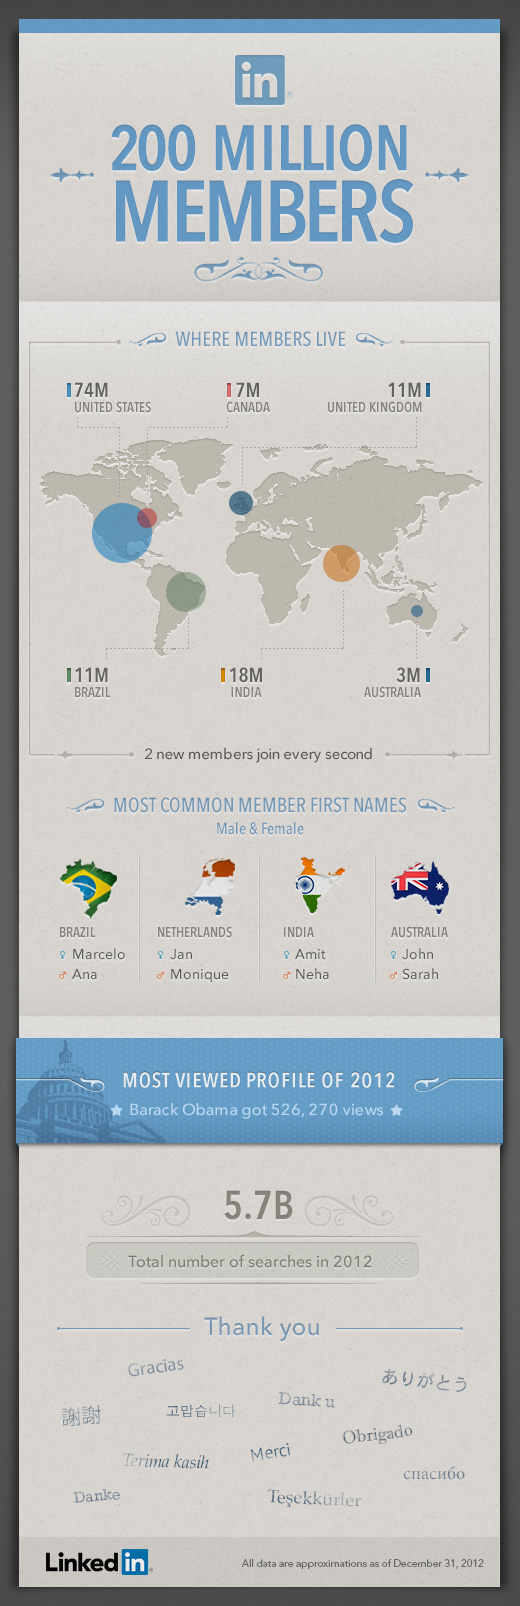 Linkedin's 200 million users